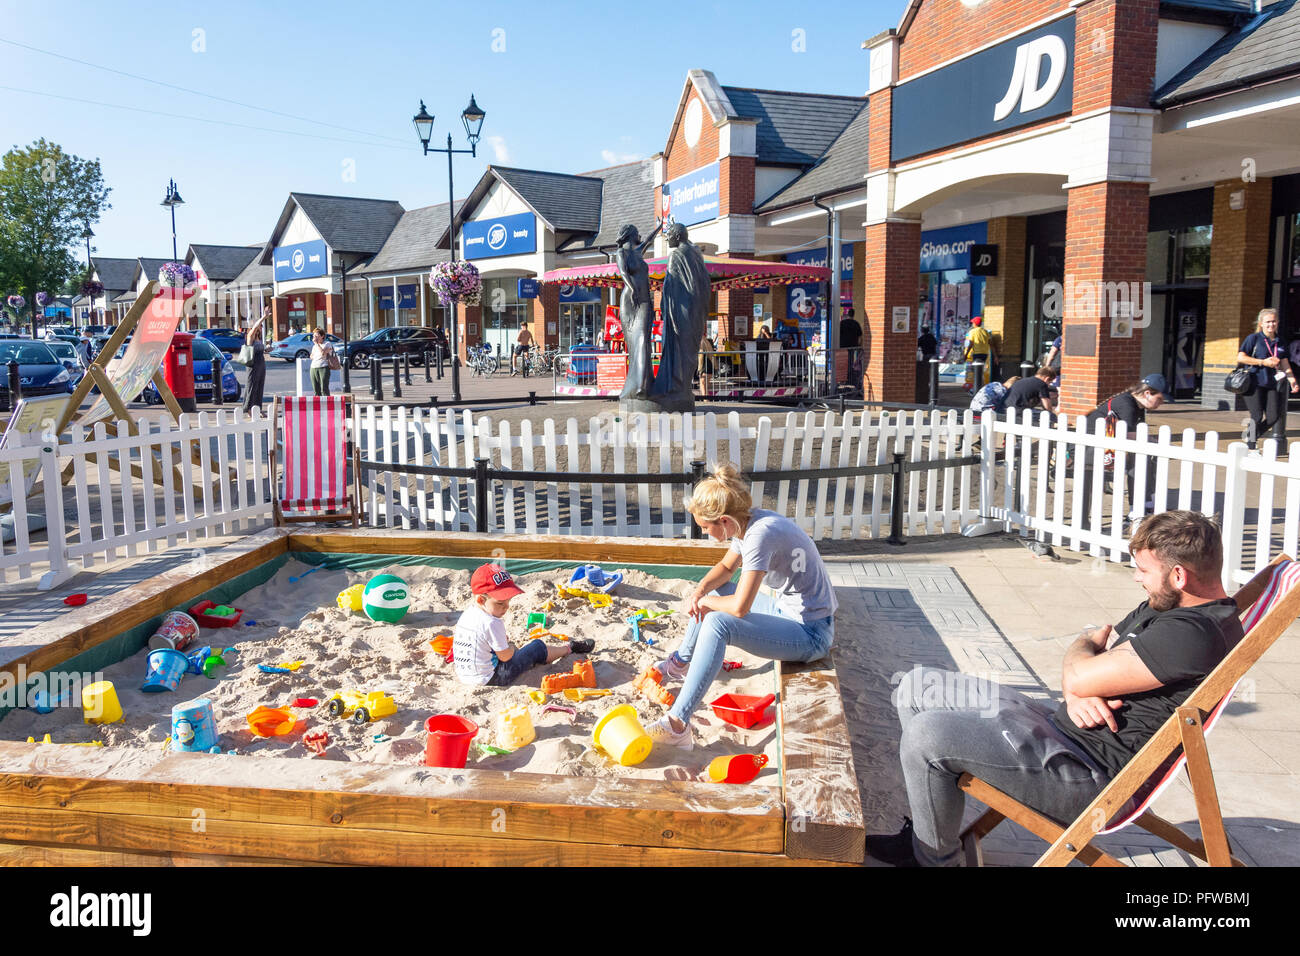 Family at children's sandpit, Two Rivers Shopping Centre, Staines-upon-Thames, Surrey, England, United Kingdom - Stock Image